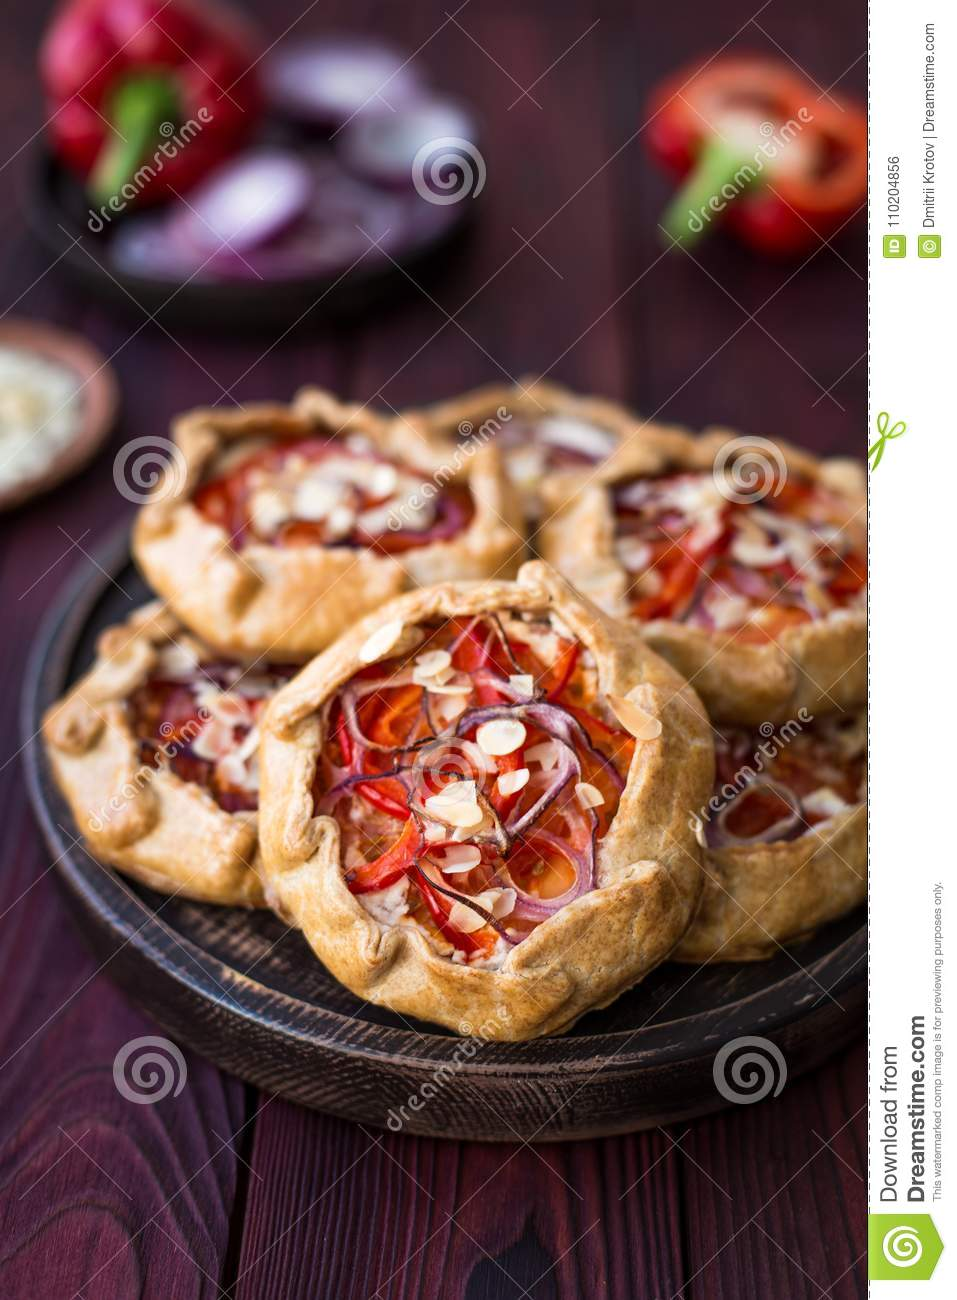 Mini pizza, vegetable galette with cream cheese, red onion, tomatoes, sweet pepper and almonds